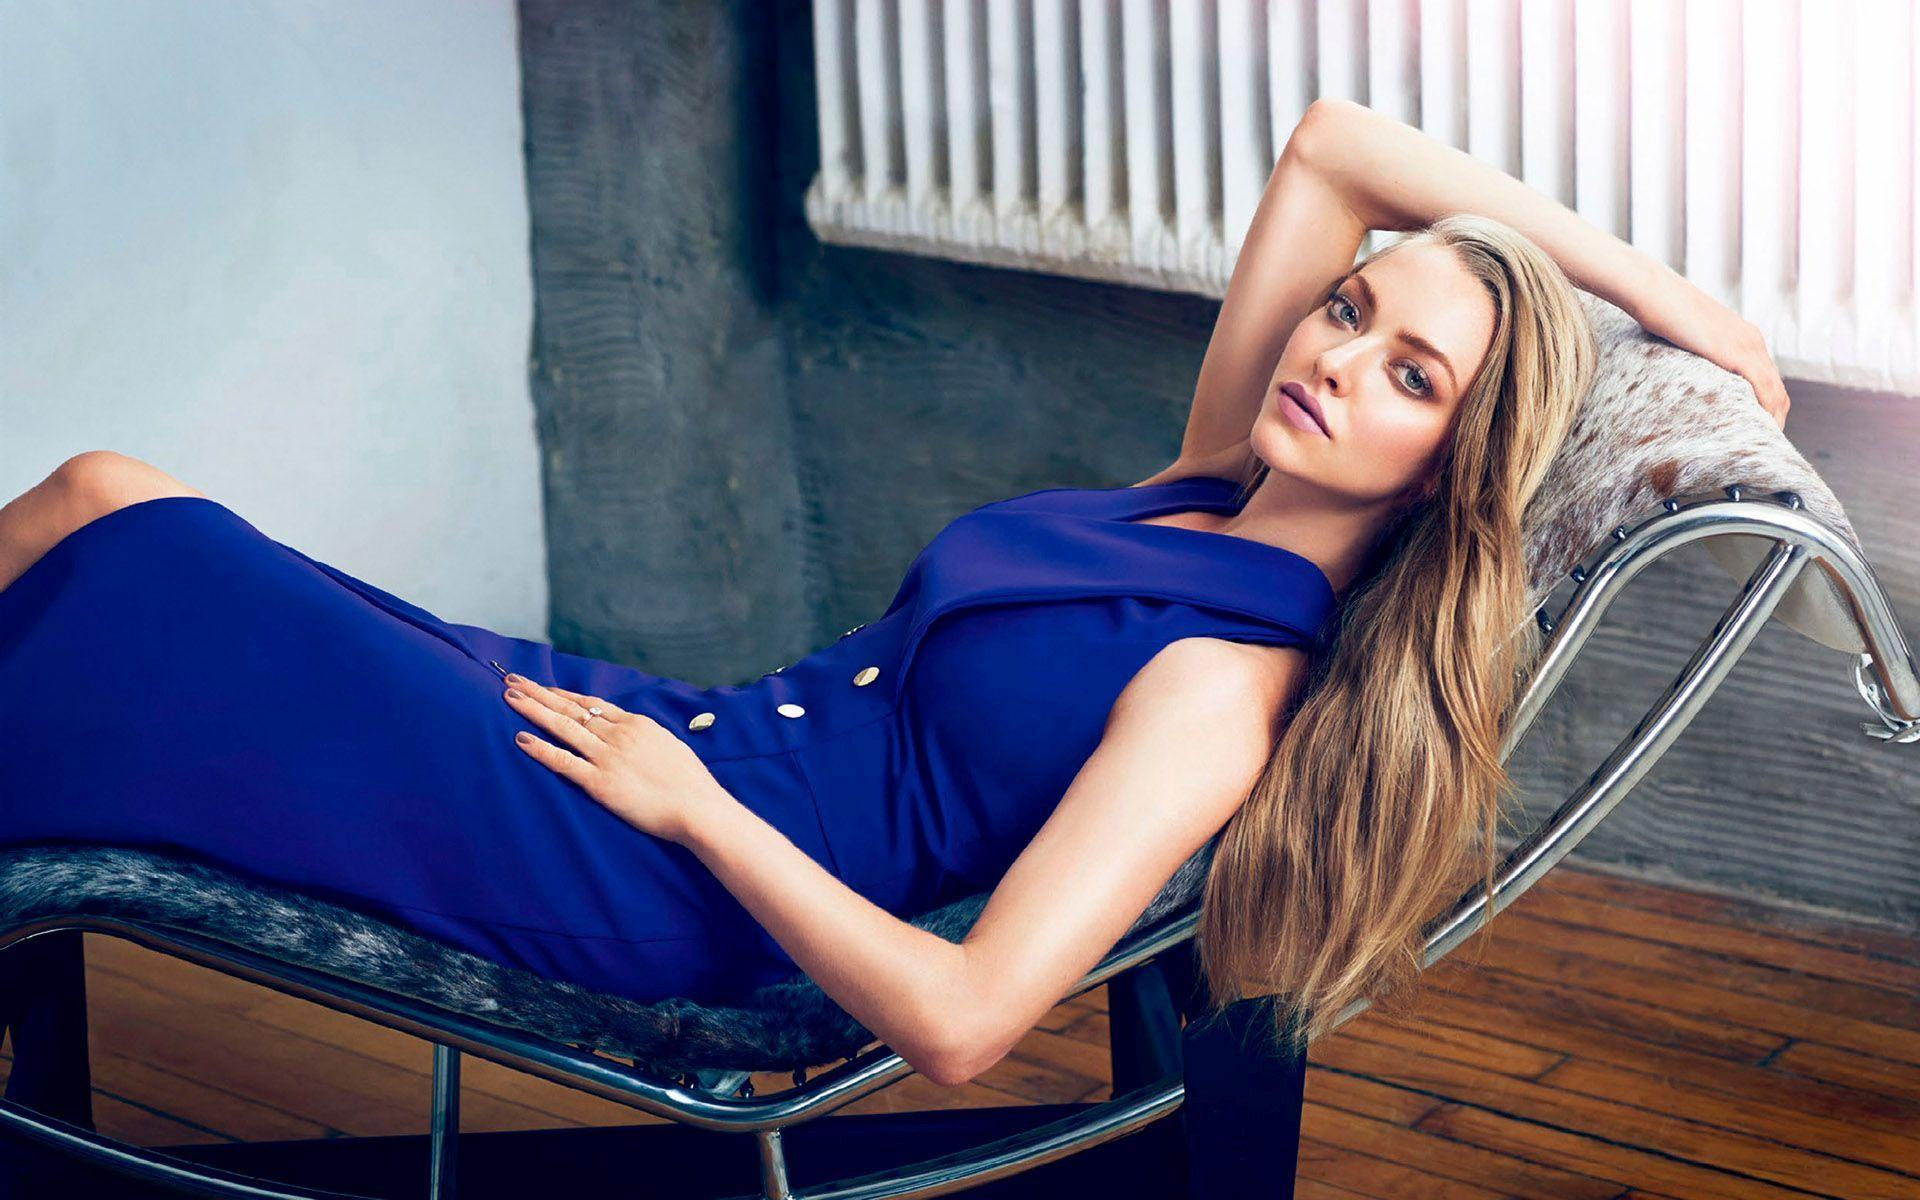 Microsoft Animated Wallpaper Hd Amanda Seyfried In A Blue Dress Lying On The Chair